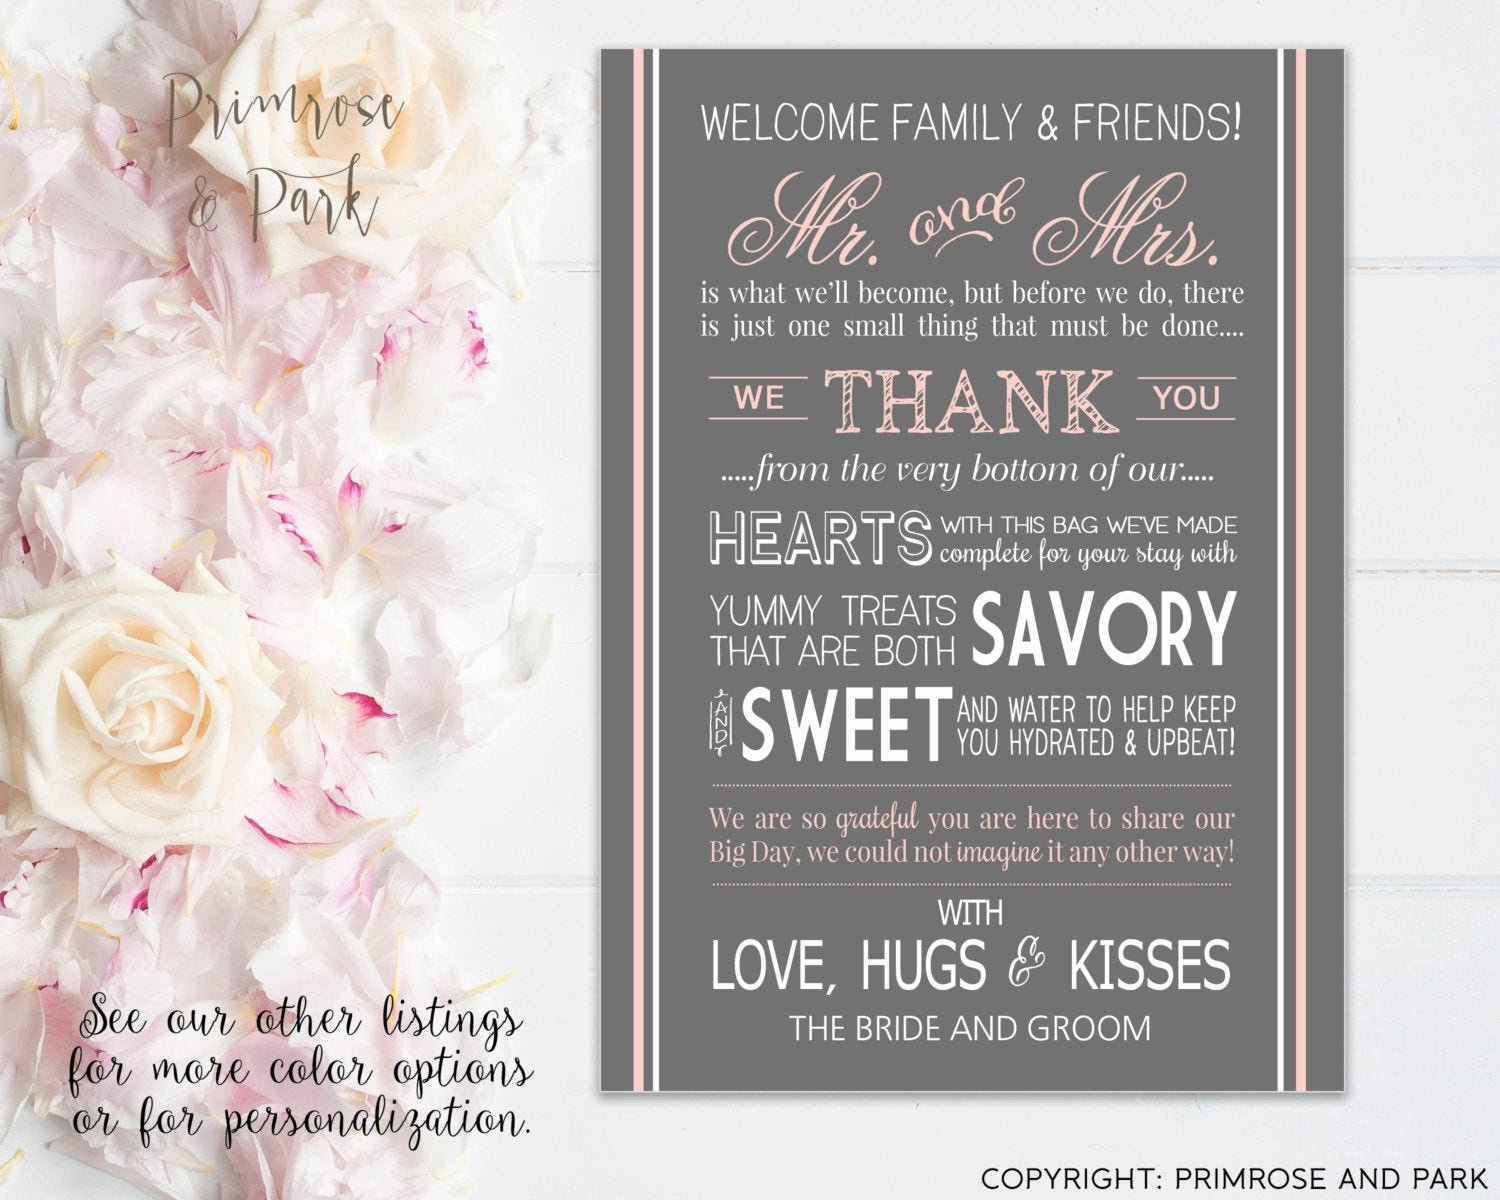 Wedding Hotel Welcome Letter Template Awesome Wedding Wel E Letter for Hotel Wel E Bags Wel E Note